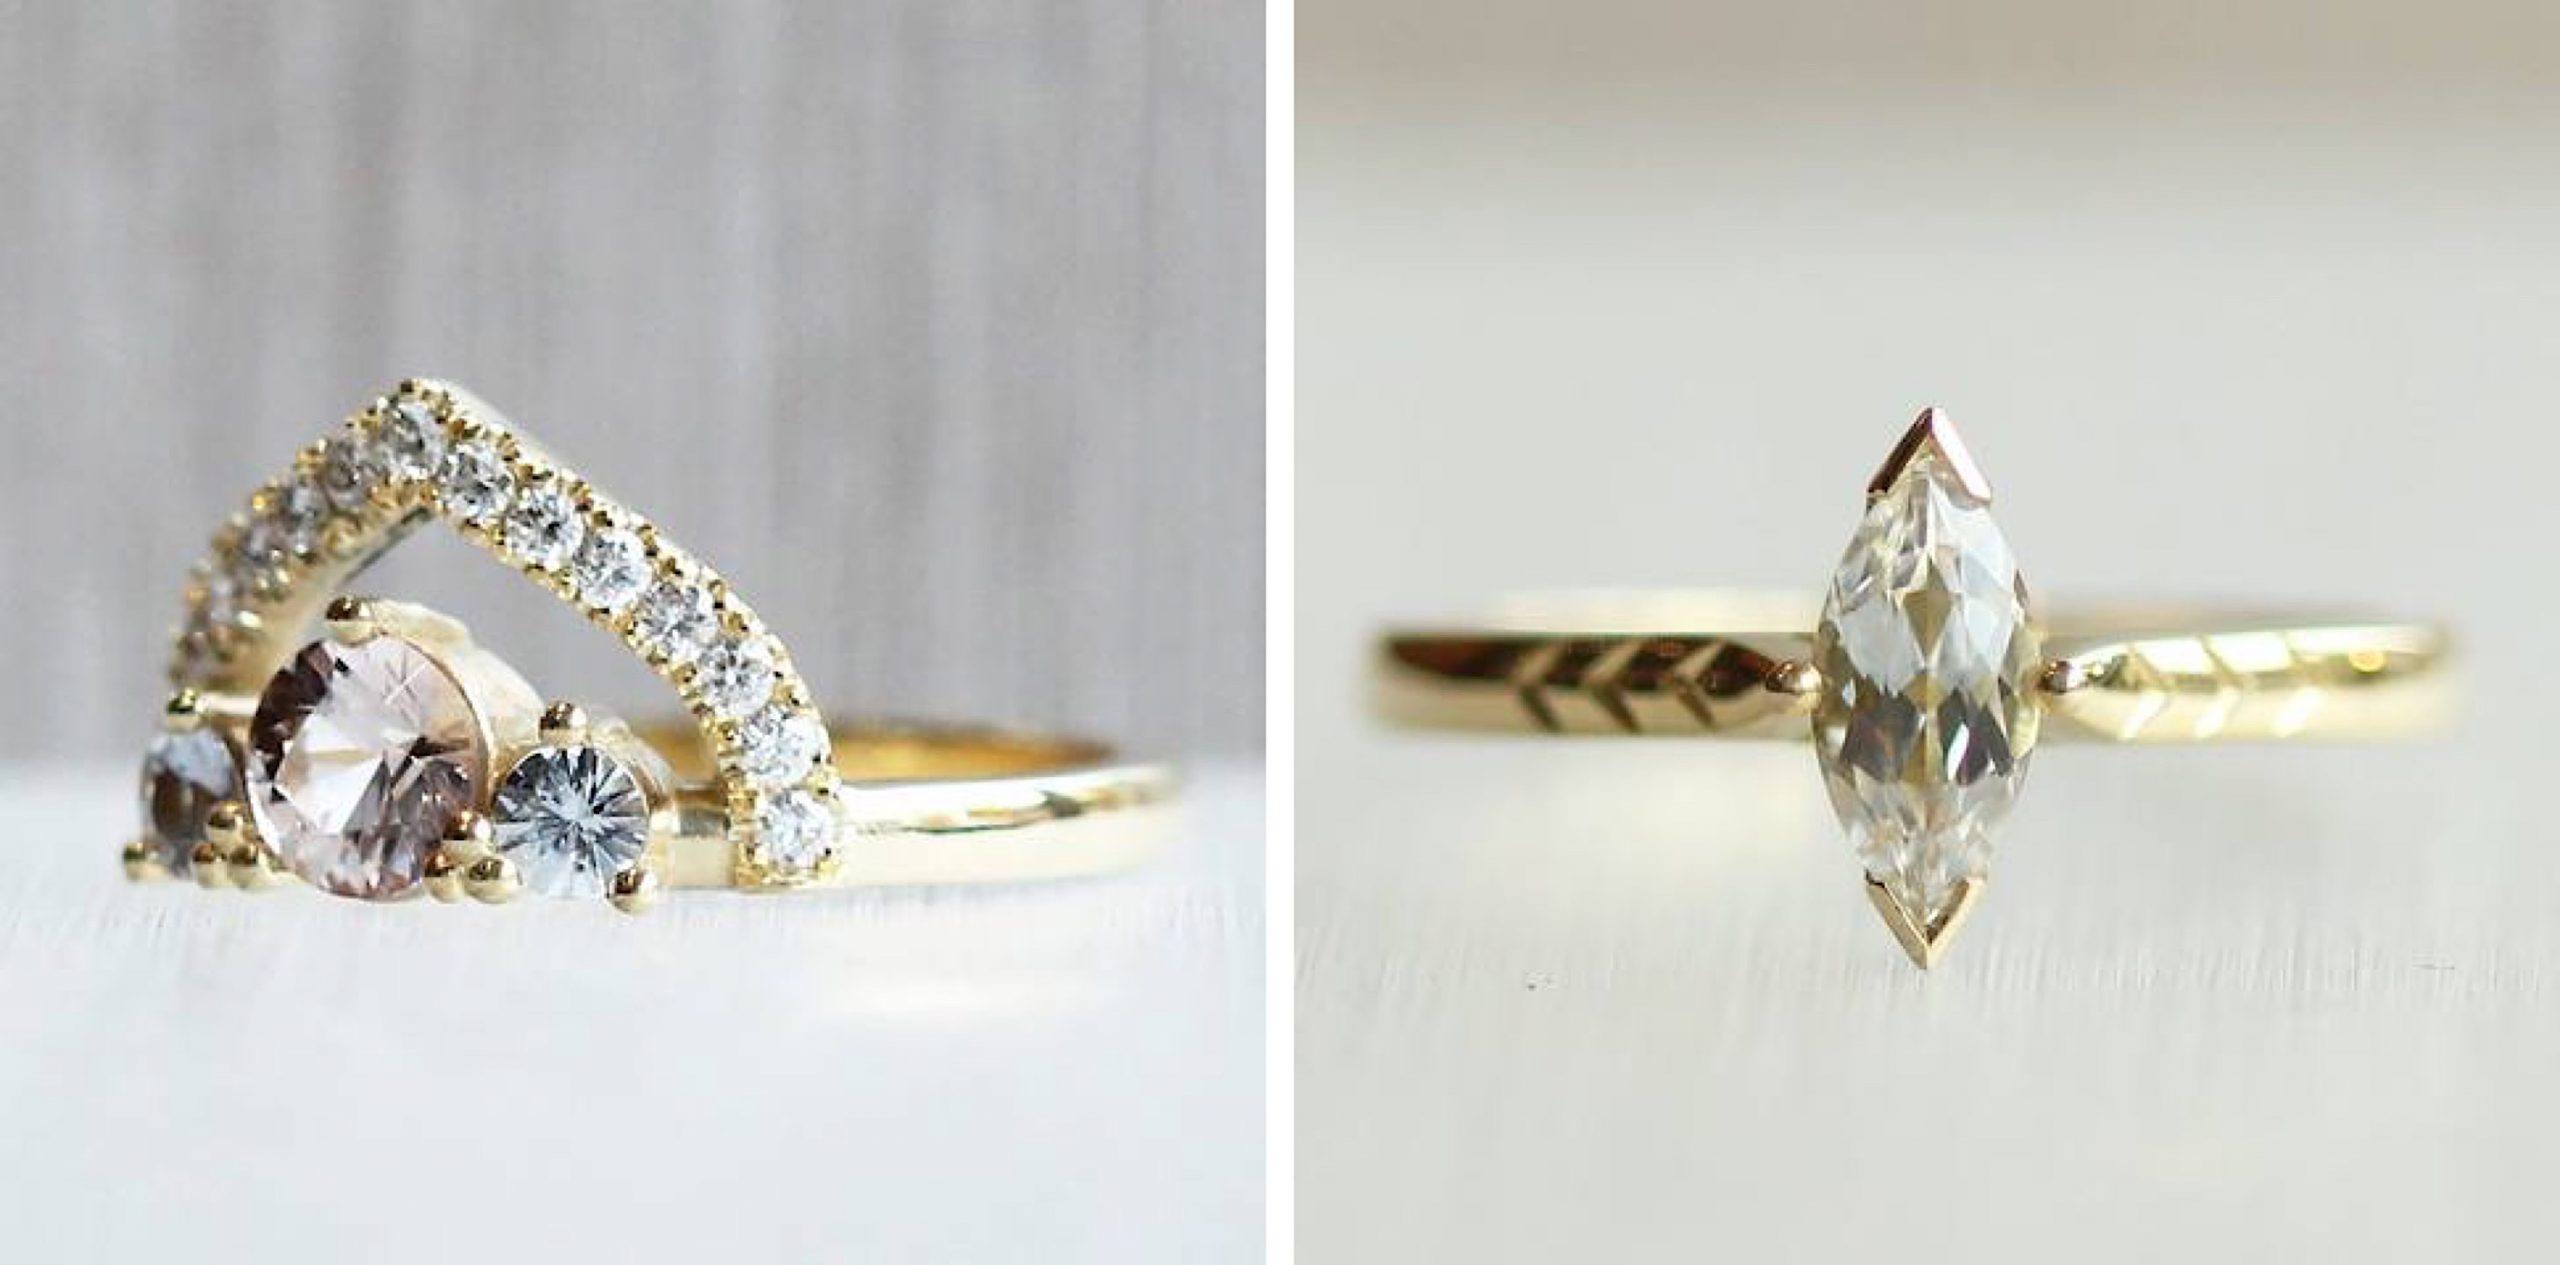 Two square photos of socially responsible wedding jewellery by FTJCo.